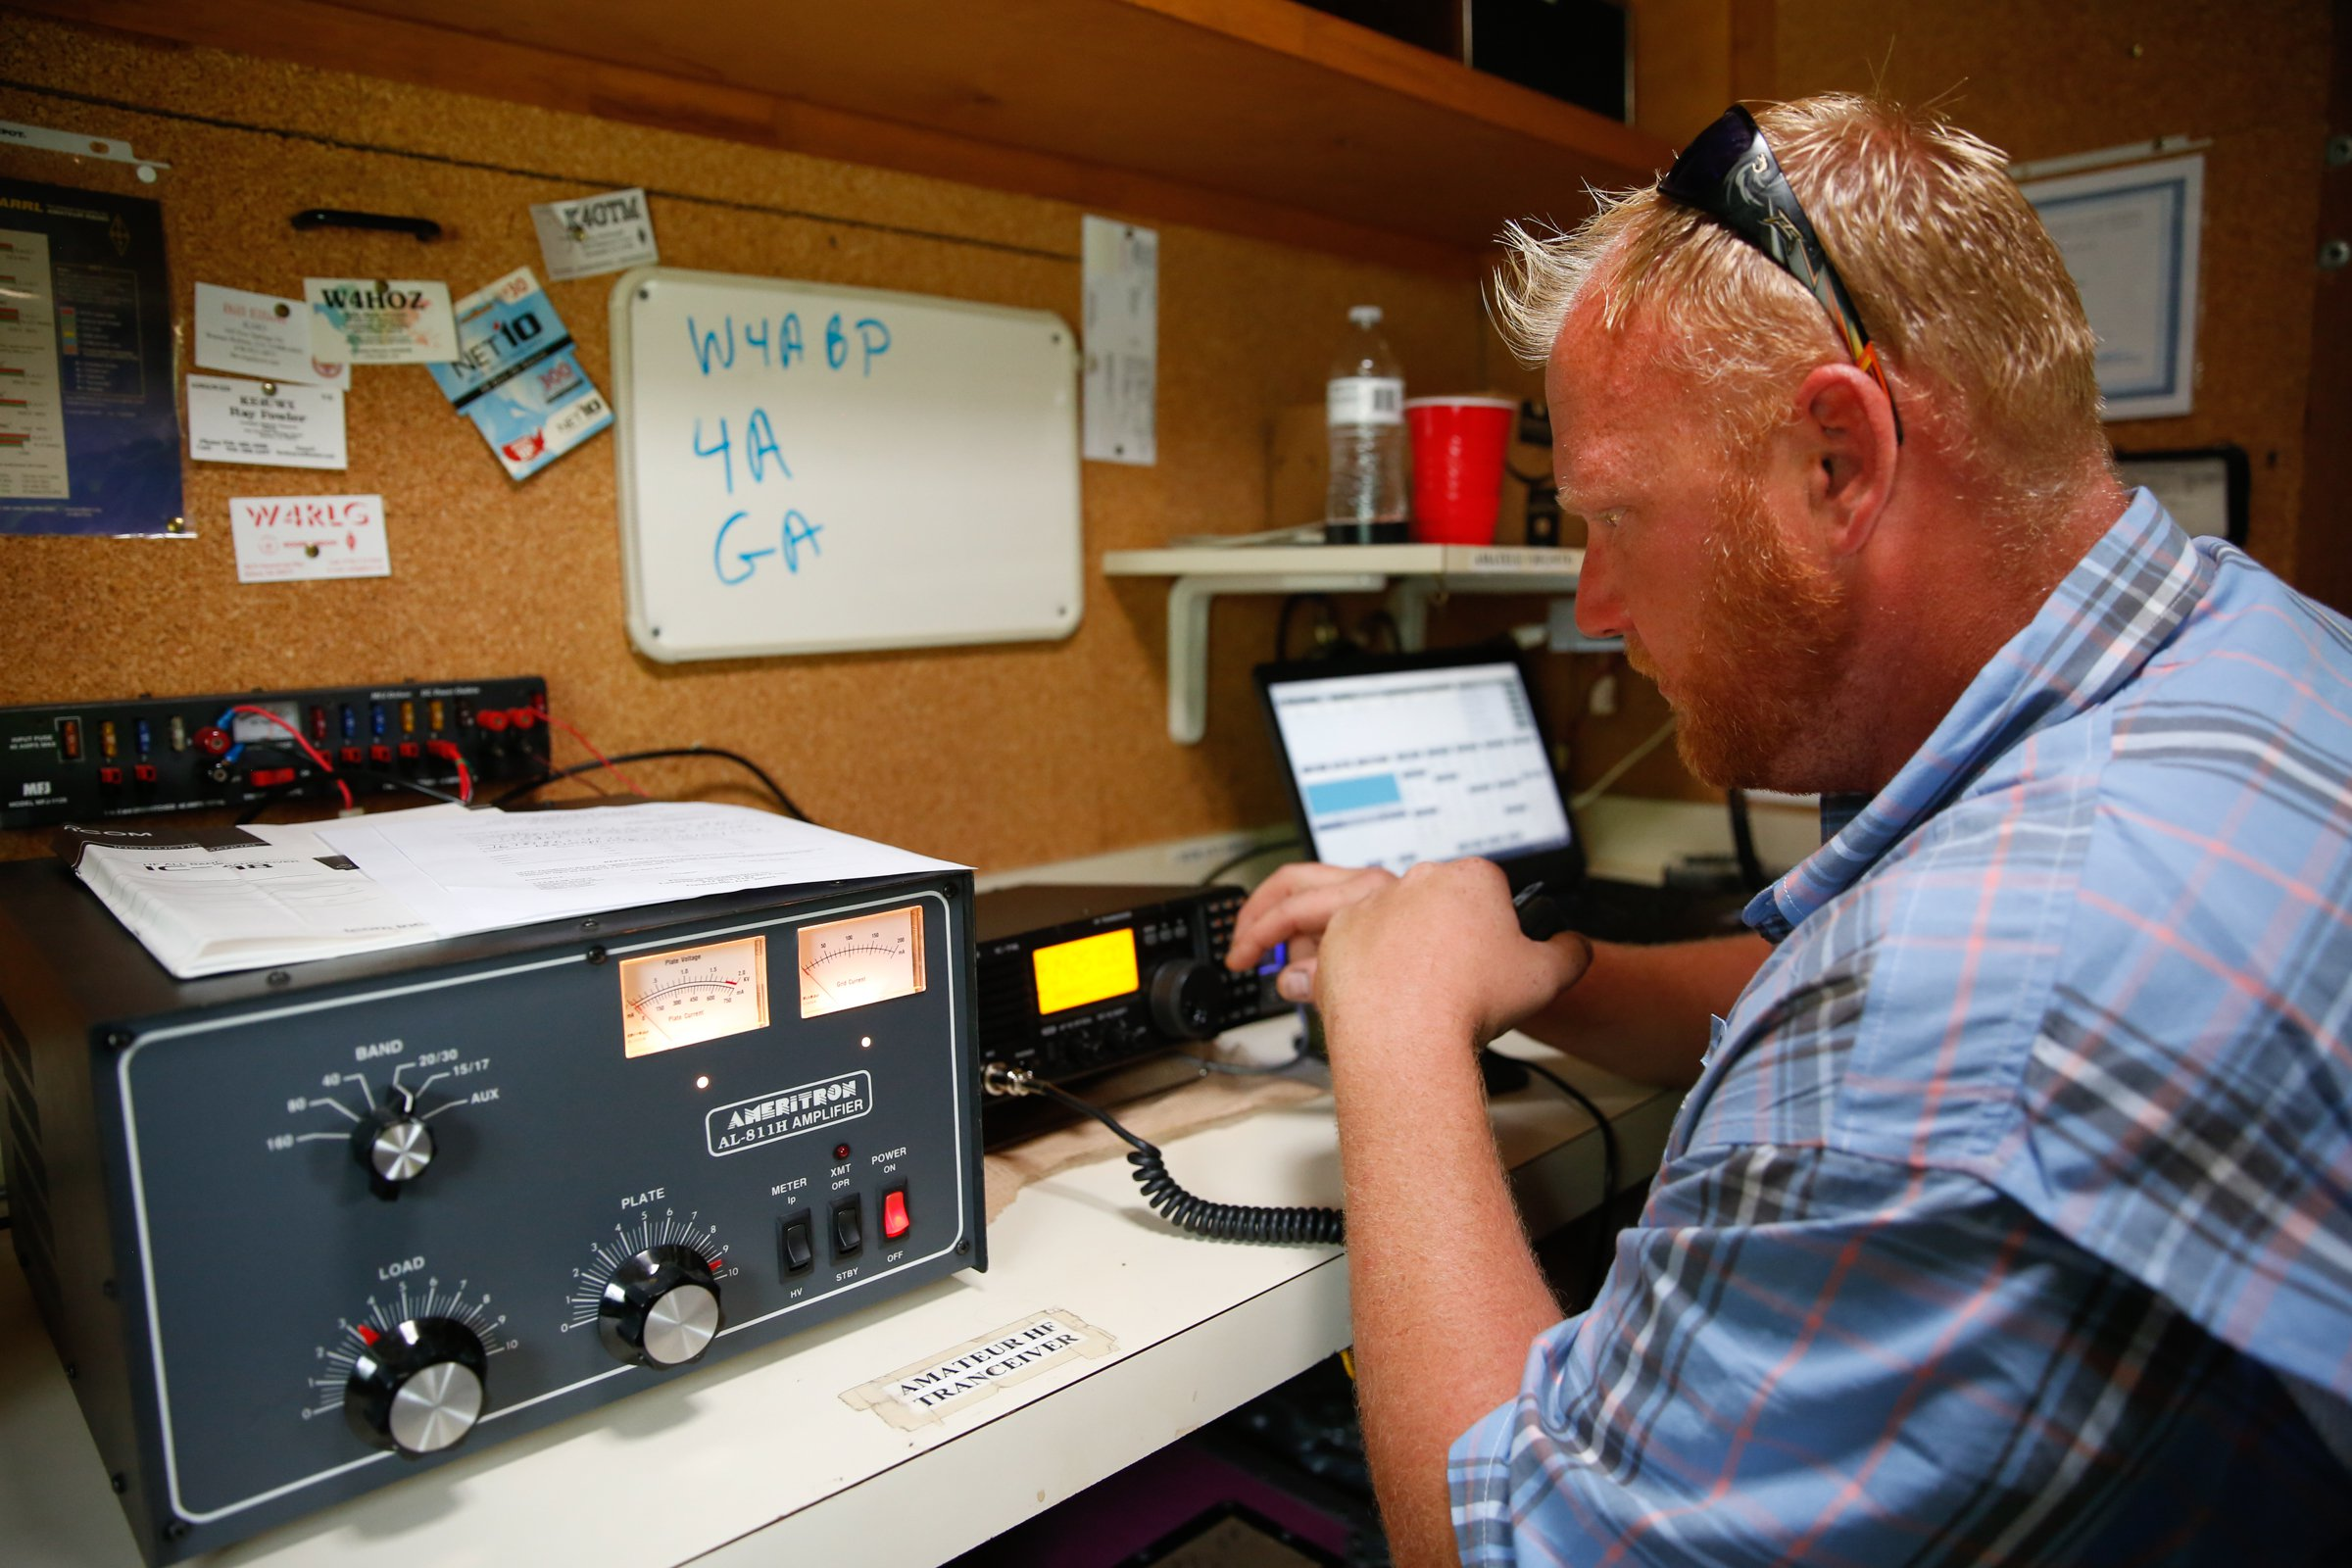 Radio club uses Field Day to spread the word about ham radio